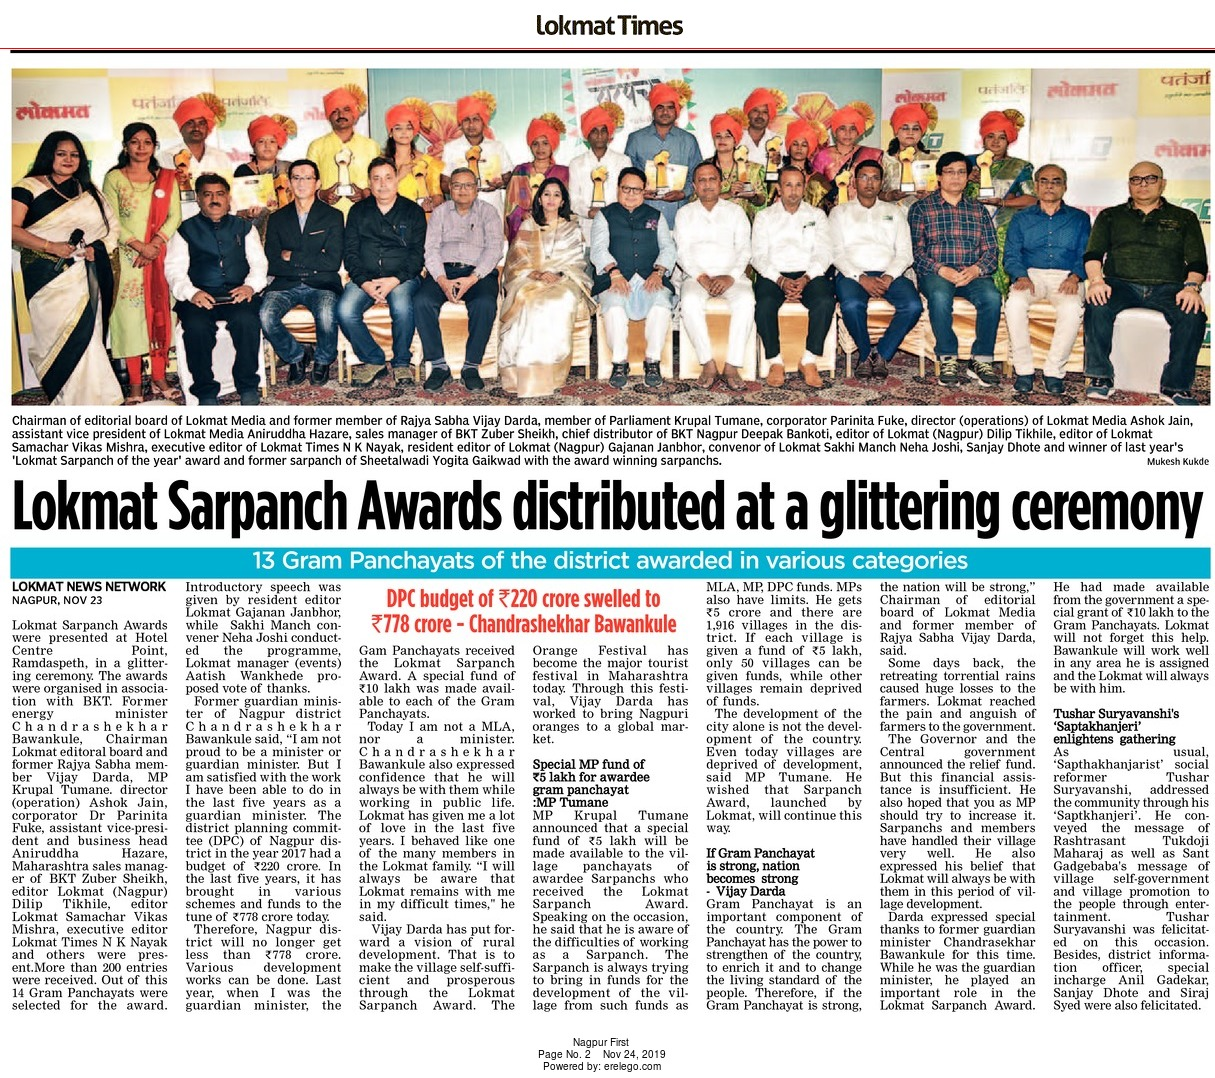 Lokmat Sarpanch Awards distributed at a glittering ceremony